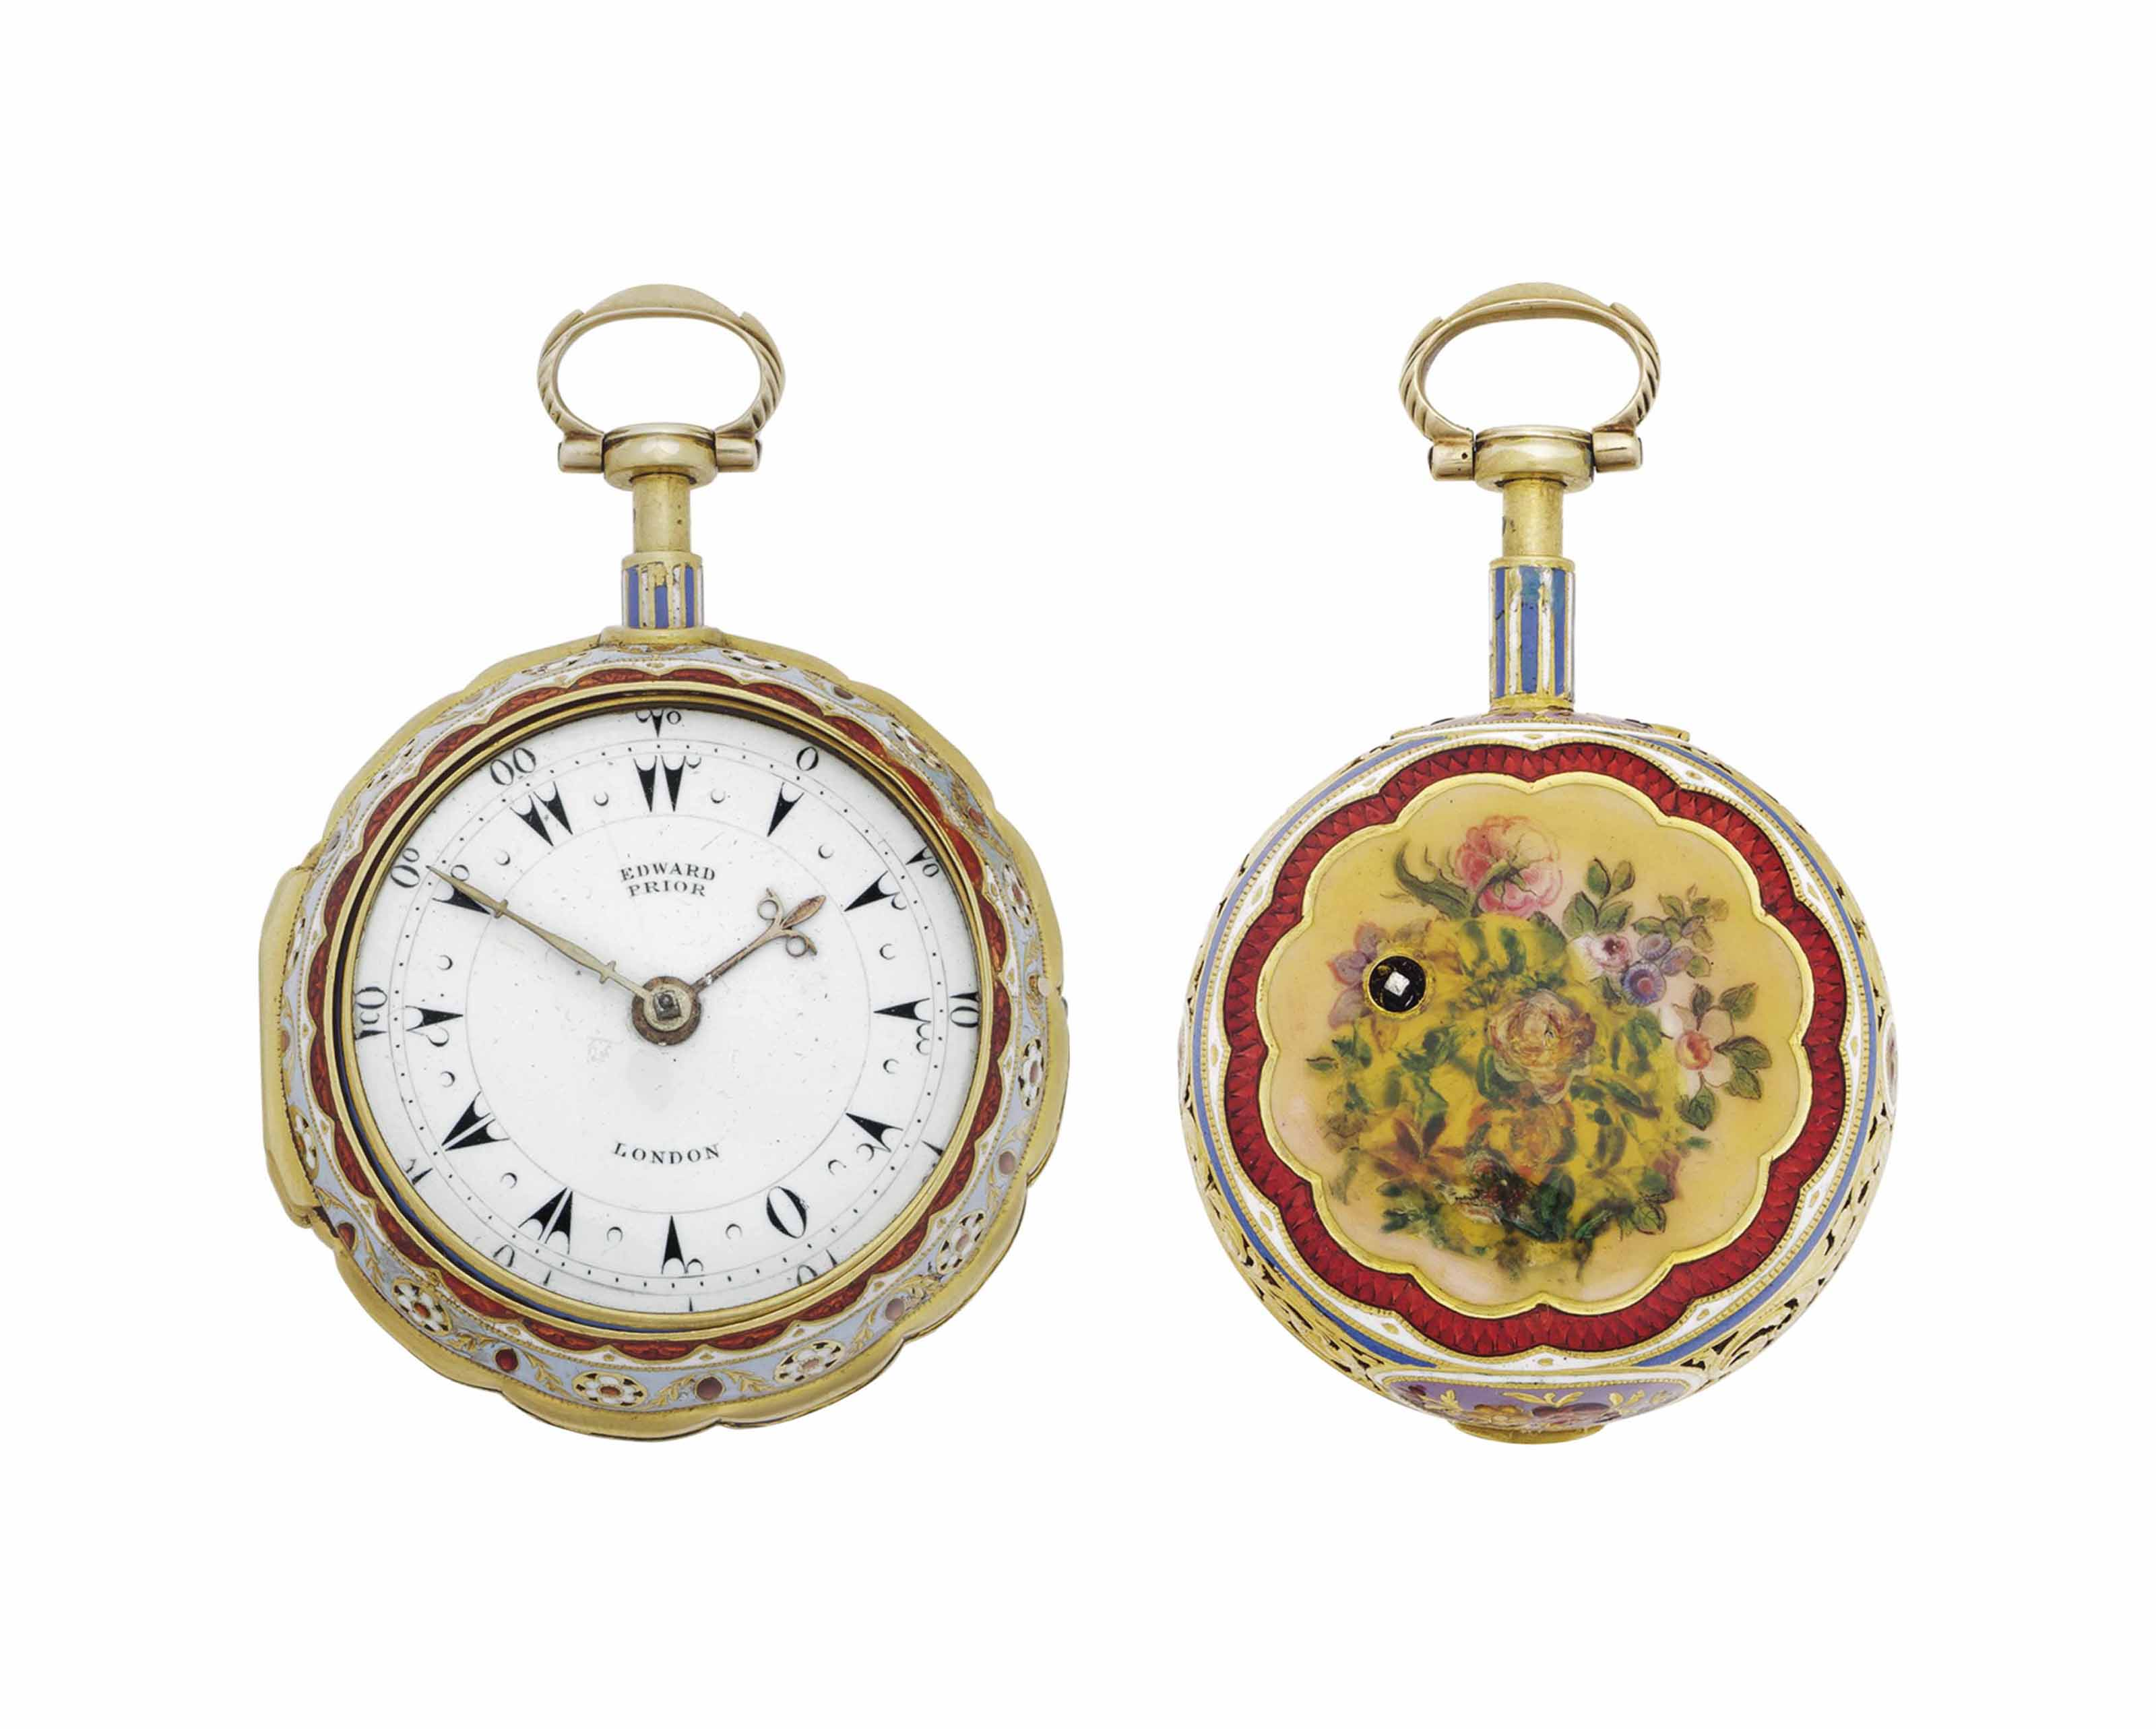 Edward Prior. A Fine 18k Gold and Enamel Pair Case Quarter Repeating Keywound Verge Watch, Made for the Turkish Market